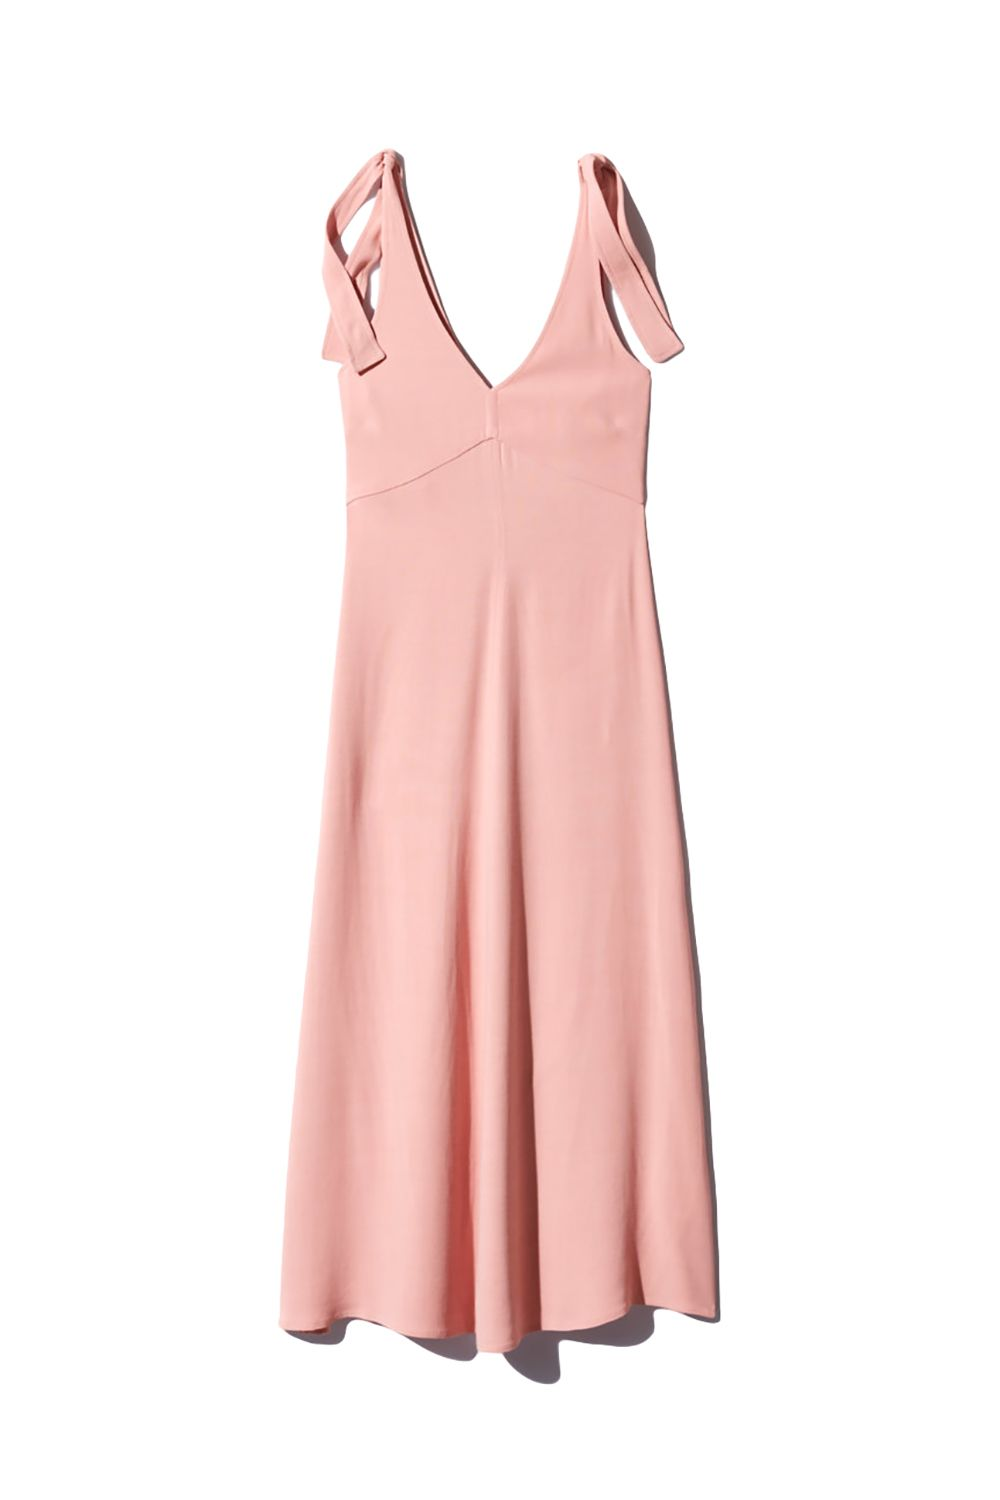 """<p>Shoulder ties and a fluted hem, because shouldn't your skirt match your drink glass of choice?</p><p><strong data-verified=""""redactor"""" data-redactor-tag=""""strong"""">BUY IT:</strong>Aritzia, $70;<span class=""""redactor-invisible-space"""" data-verified=""""redactor"""" data-redactor-tag=""""span"""" data-redactor-class=""""redactor-invisible-space""""></span><a href=""""http://us.aritzia.com/product/pr%C3%A9face-dress/62190.html?dwvar_62190_color=12289"""" target=""""_blank"""" data-tracking-id=""""recirc-text-link"""">aritzia.com</a>.</p>"""